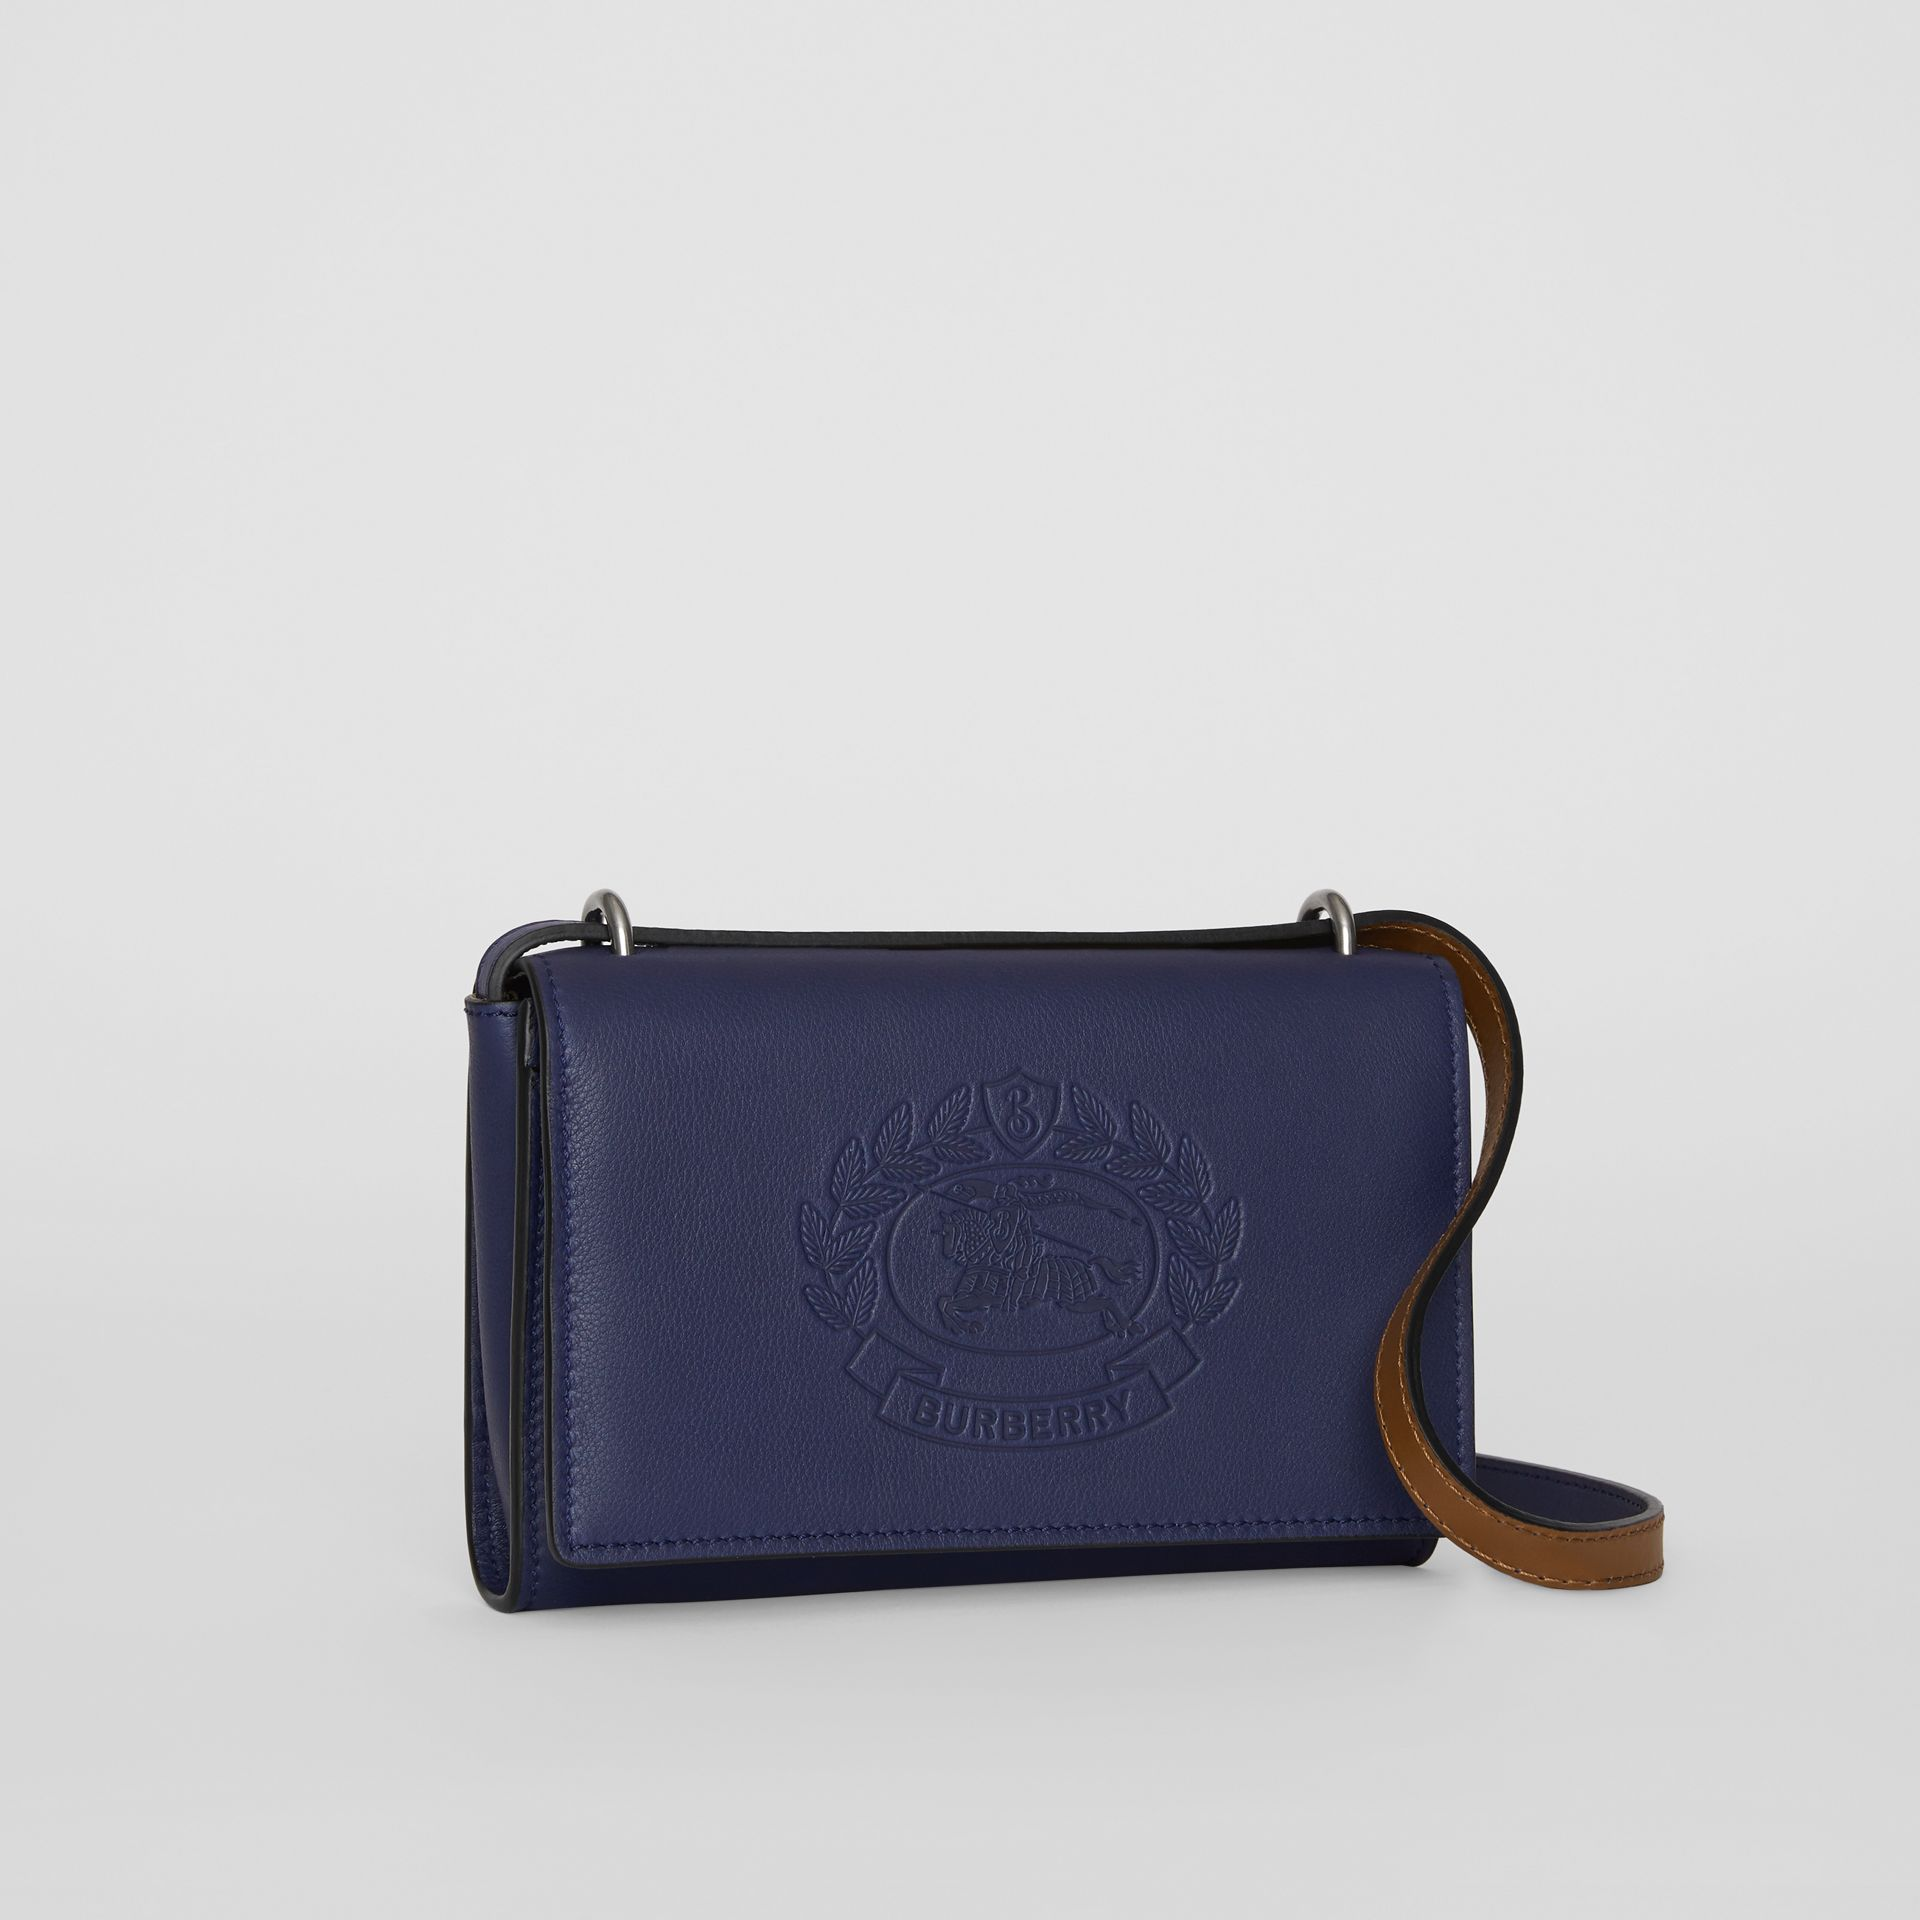 Embossed Crest Leather Wallet with Detachable Strap in Regency Blue - Women | Burberry - gallery image 6